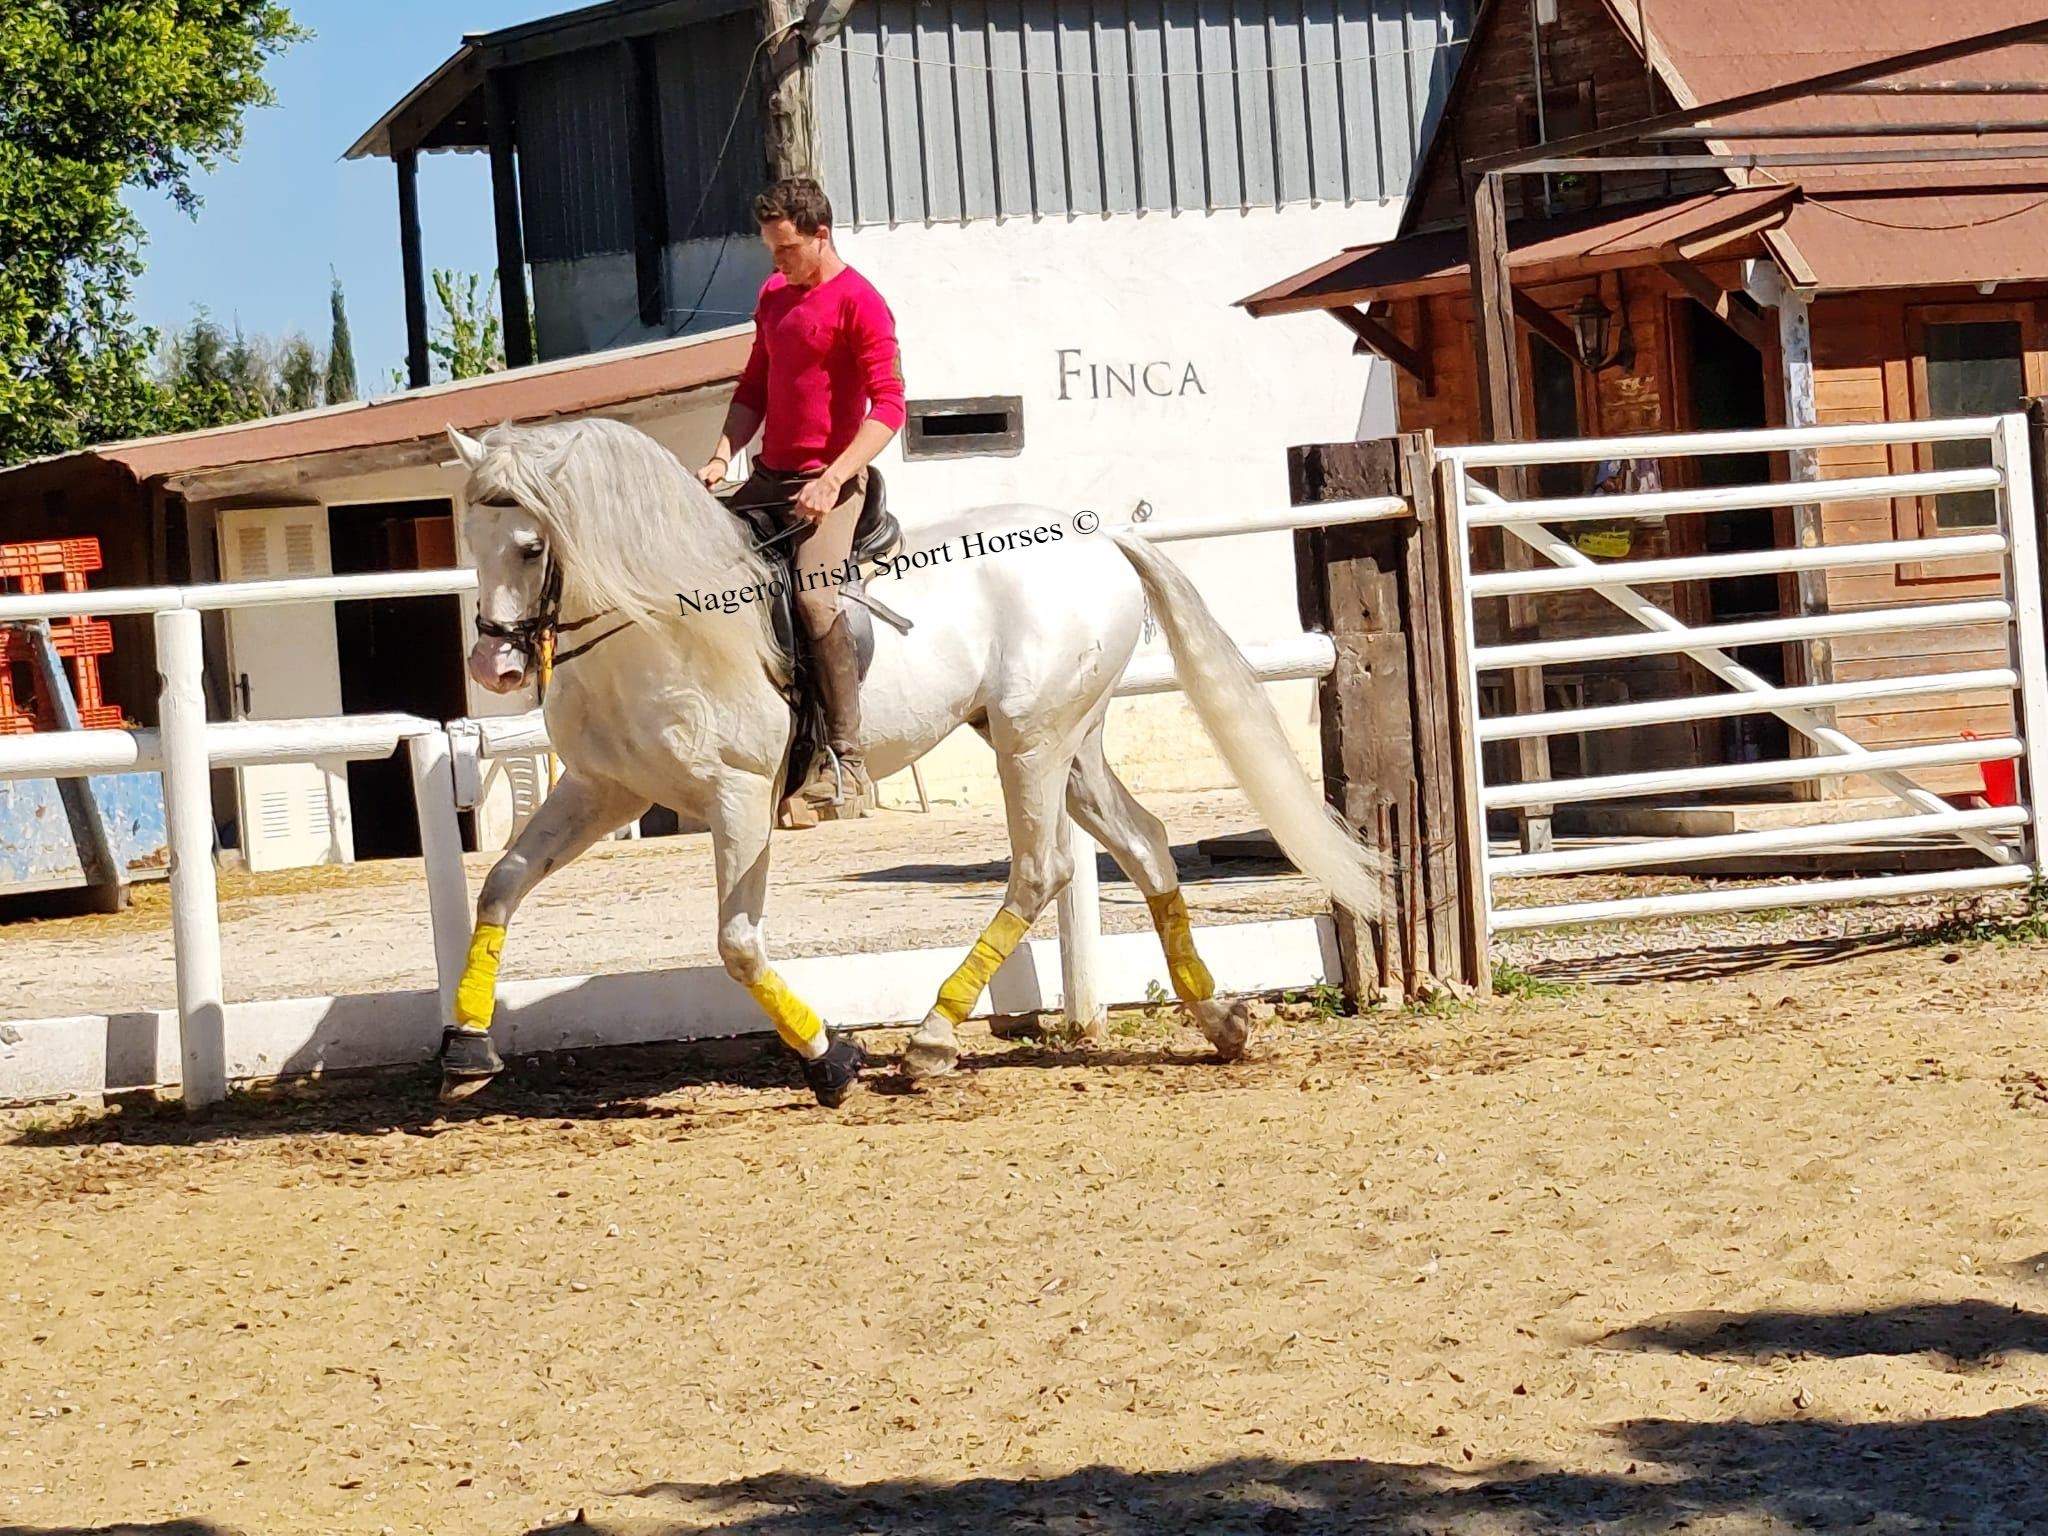 Stunning PRE with looks and temperament 3